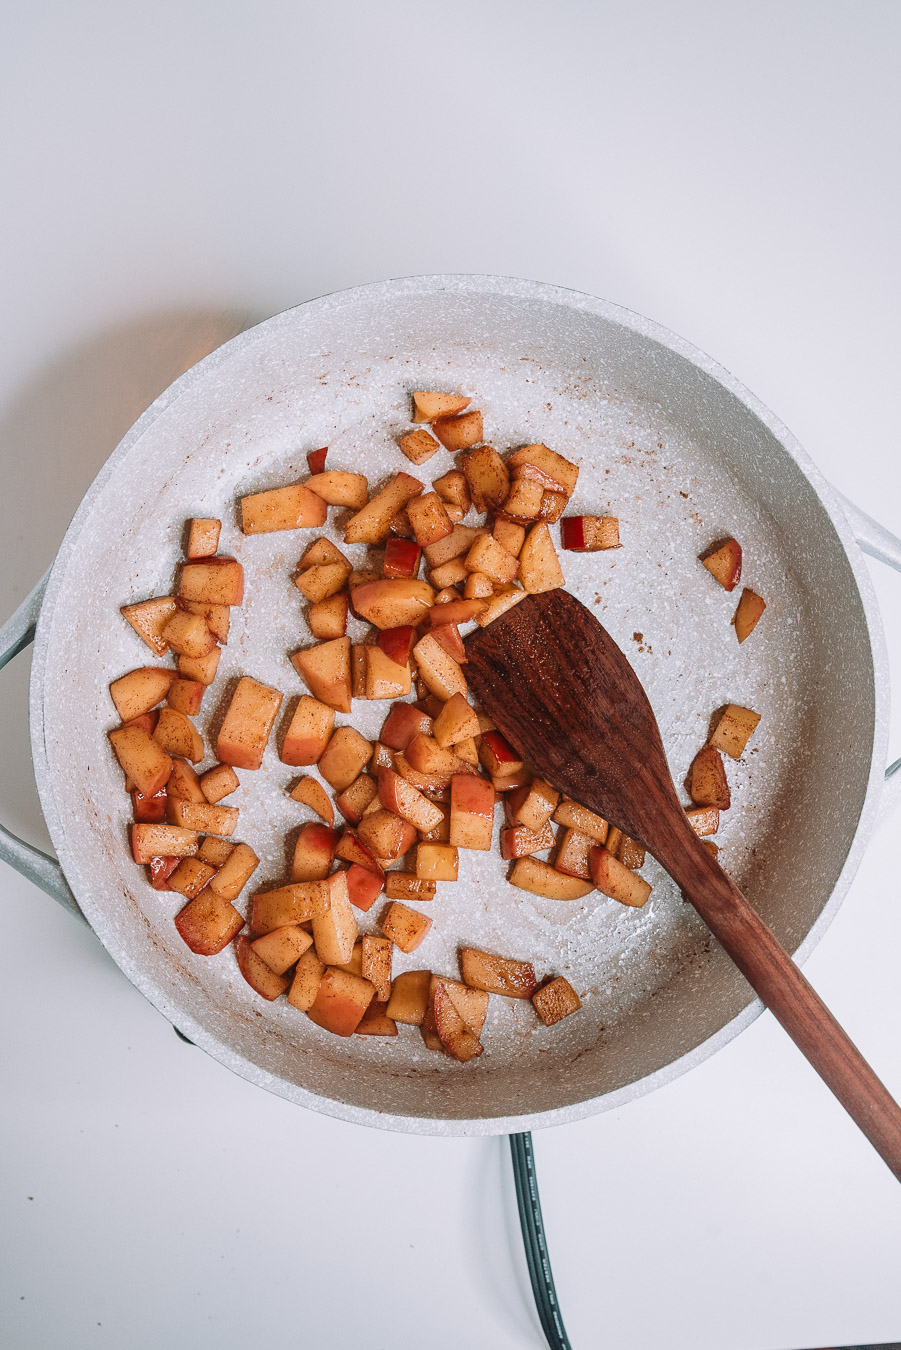 A skillet with sautéed apples on a white table